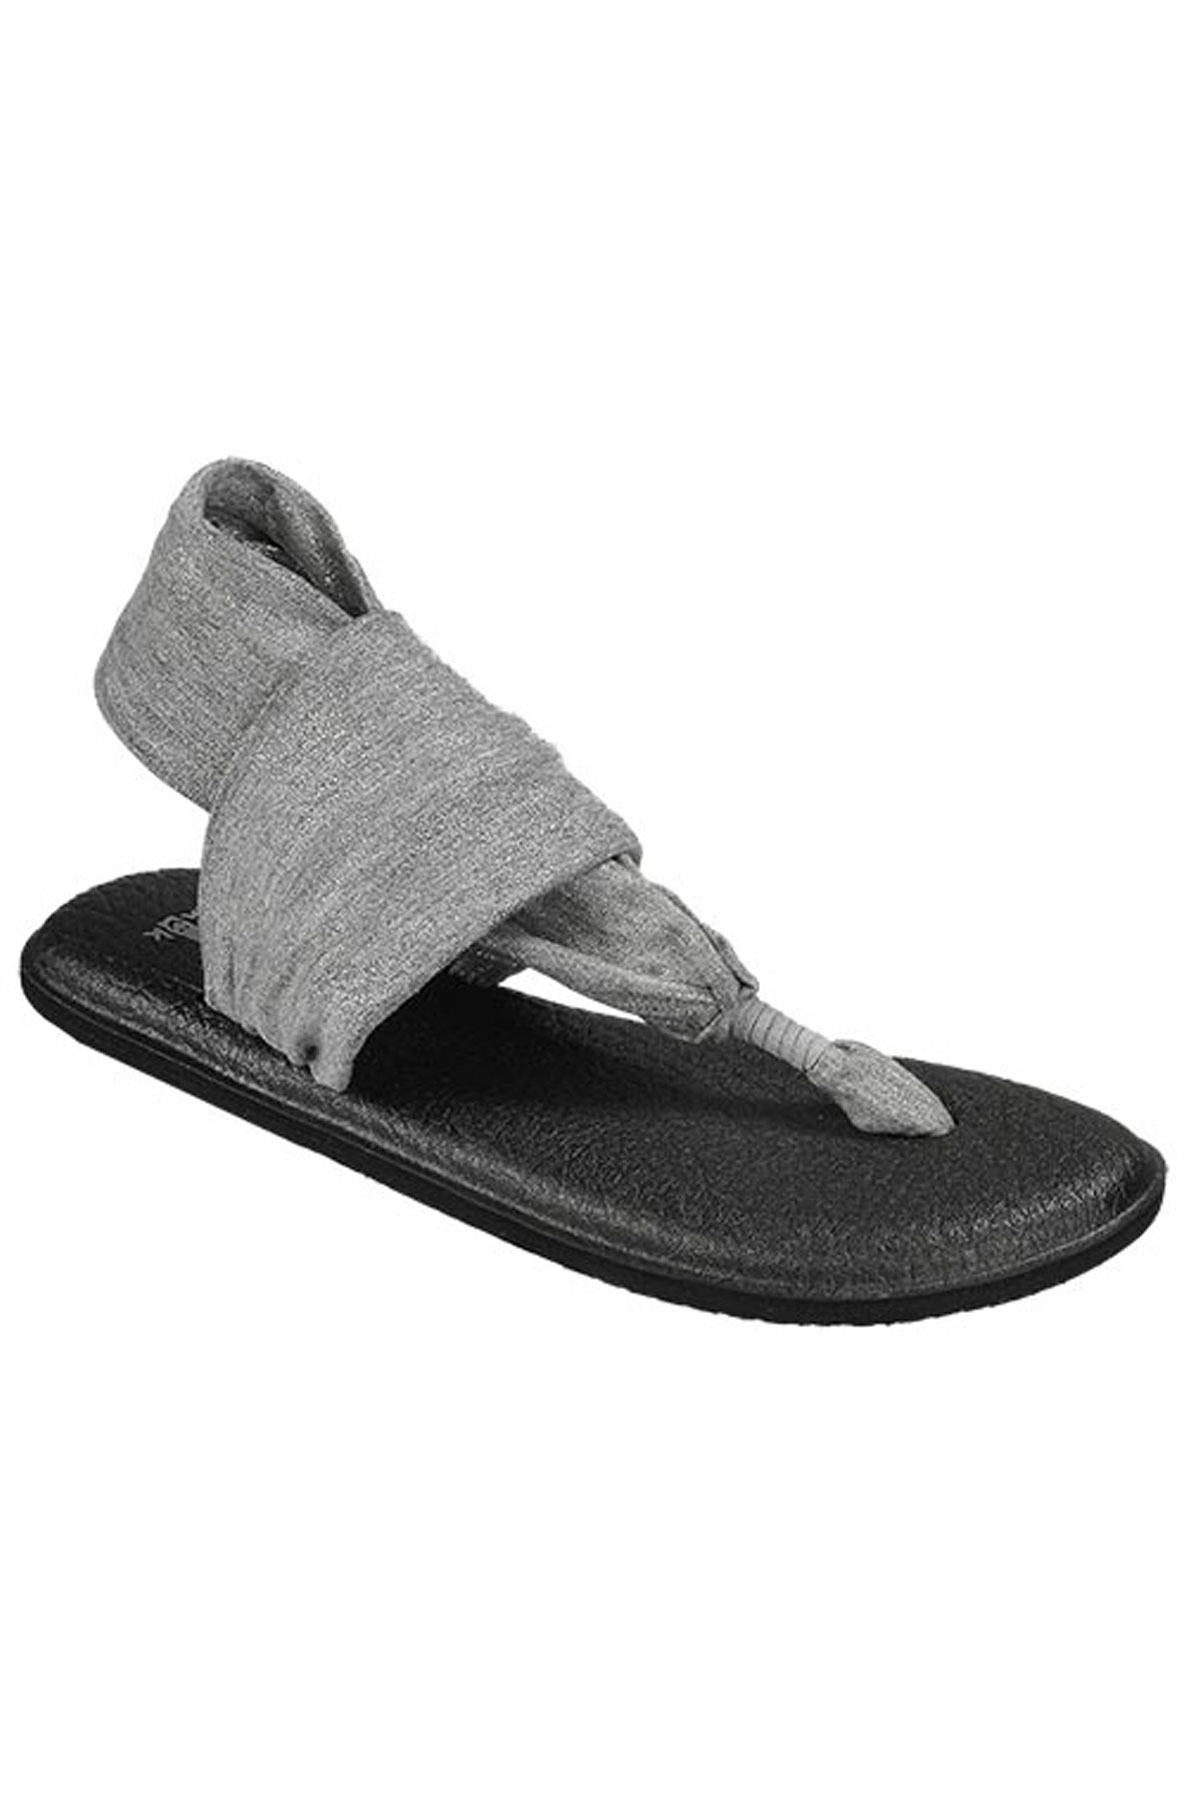 Yoga Sling Silicone Sandals - Silver 1